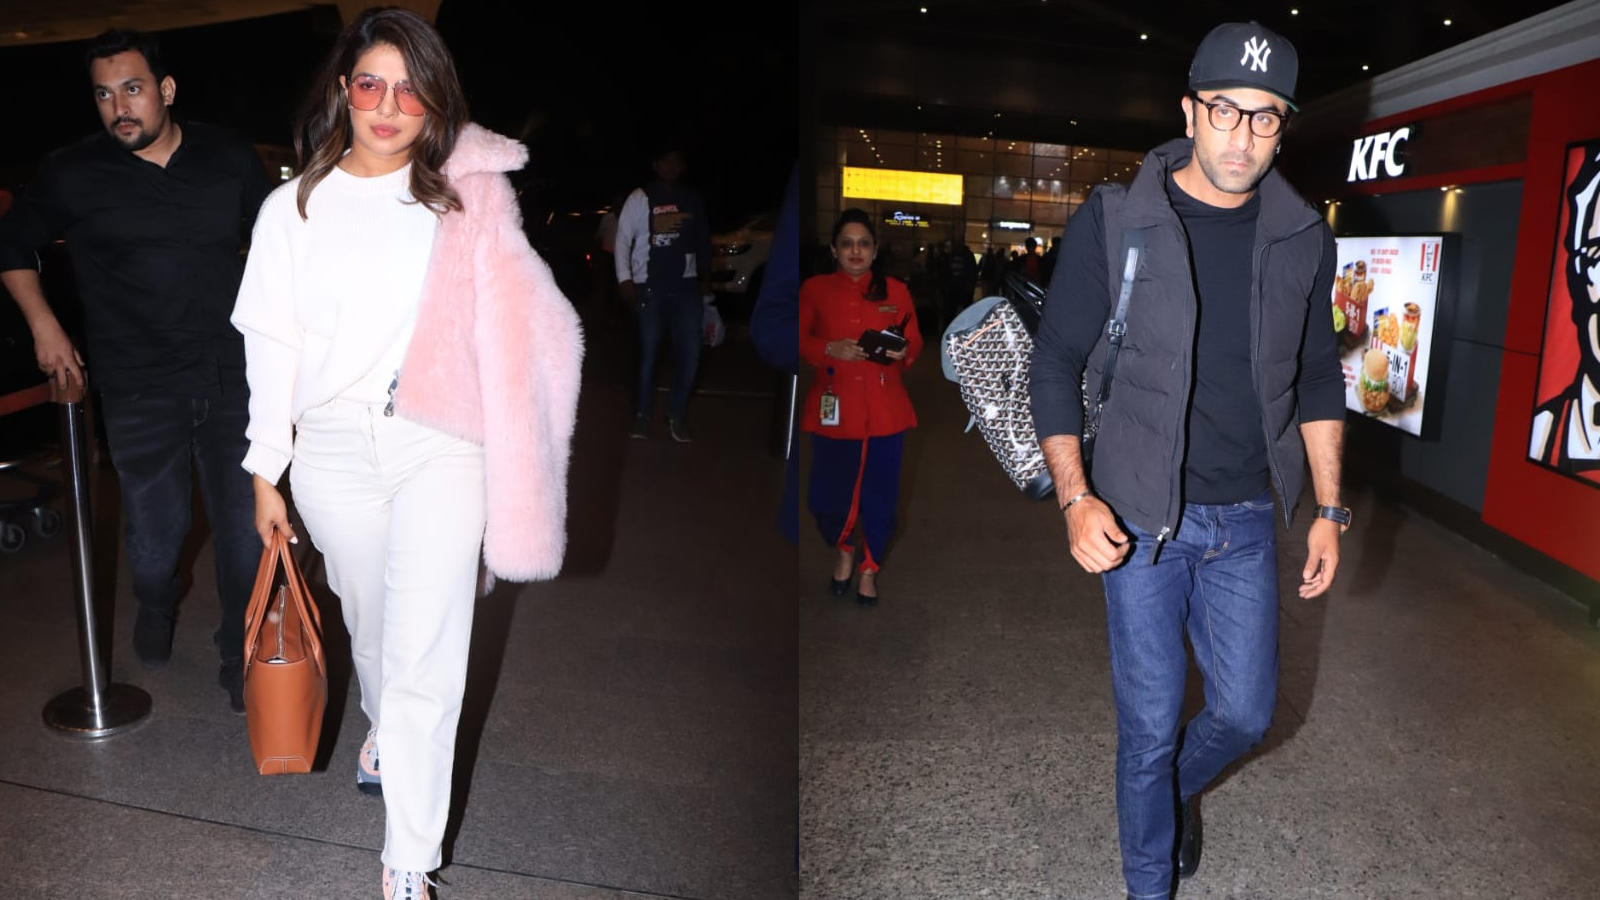 desi-girl-priyanka-chopra-spotted-wearing-an-all-white-outfit-with-a-fur-coat-ranbir-kapoor-clicked-in-an-all-black-outfit-at-mumbai-airport